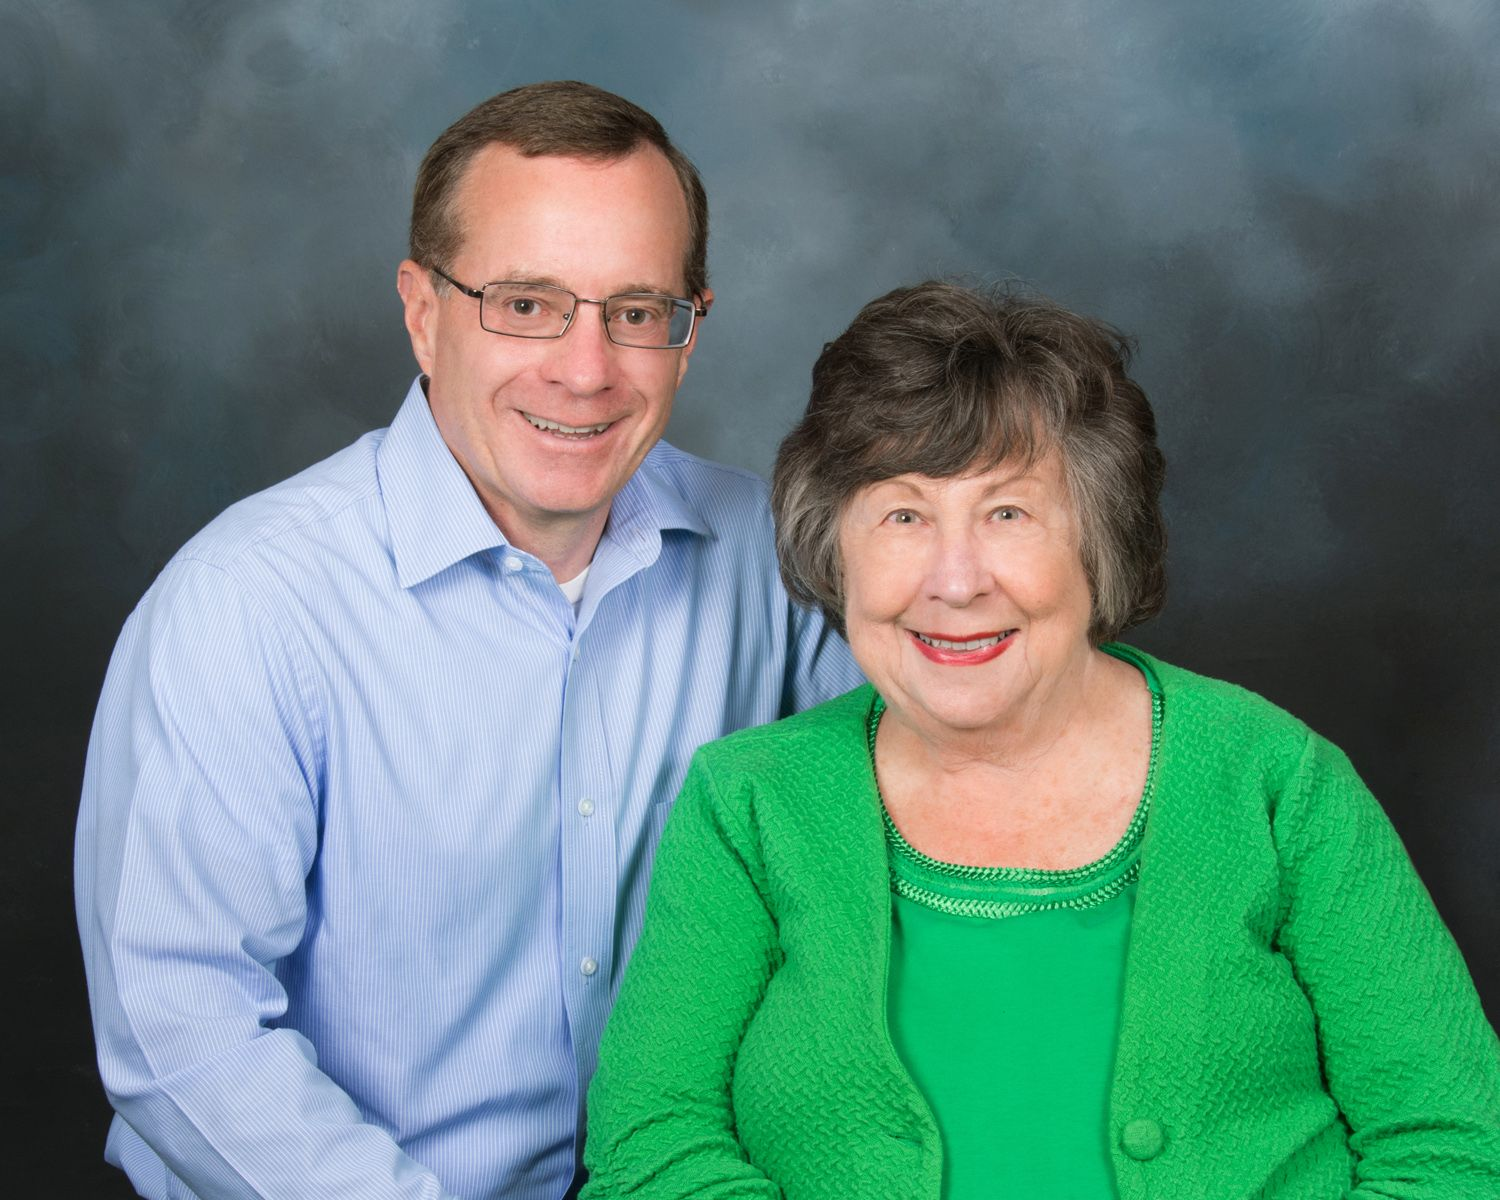 My mother, Patricia Dooling and my brother, Steven Dooling were named to South Jersey Magazine's top realtor's list. http://www.doolinggroup.com/NJ/